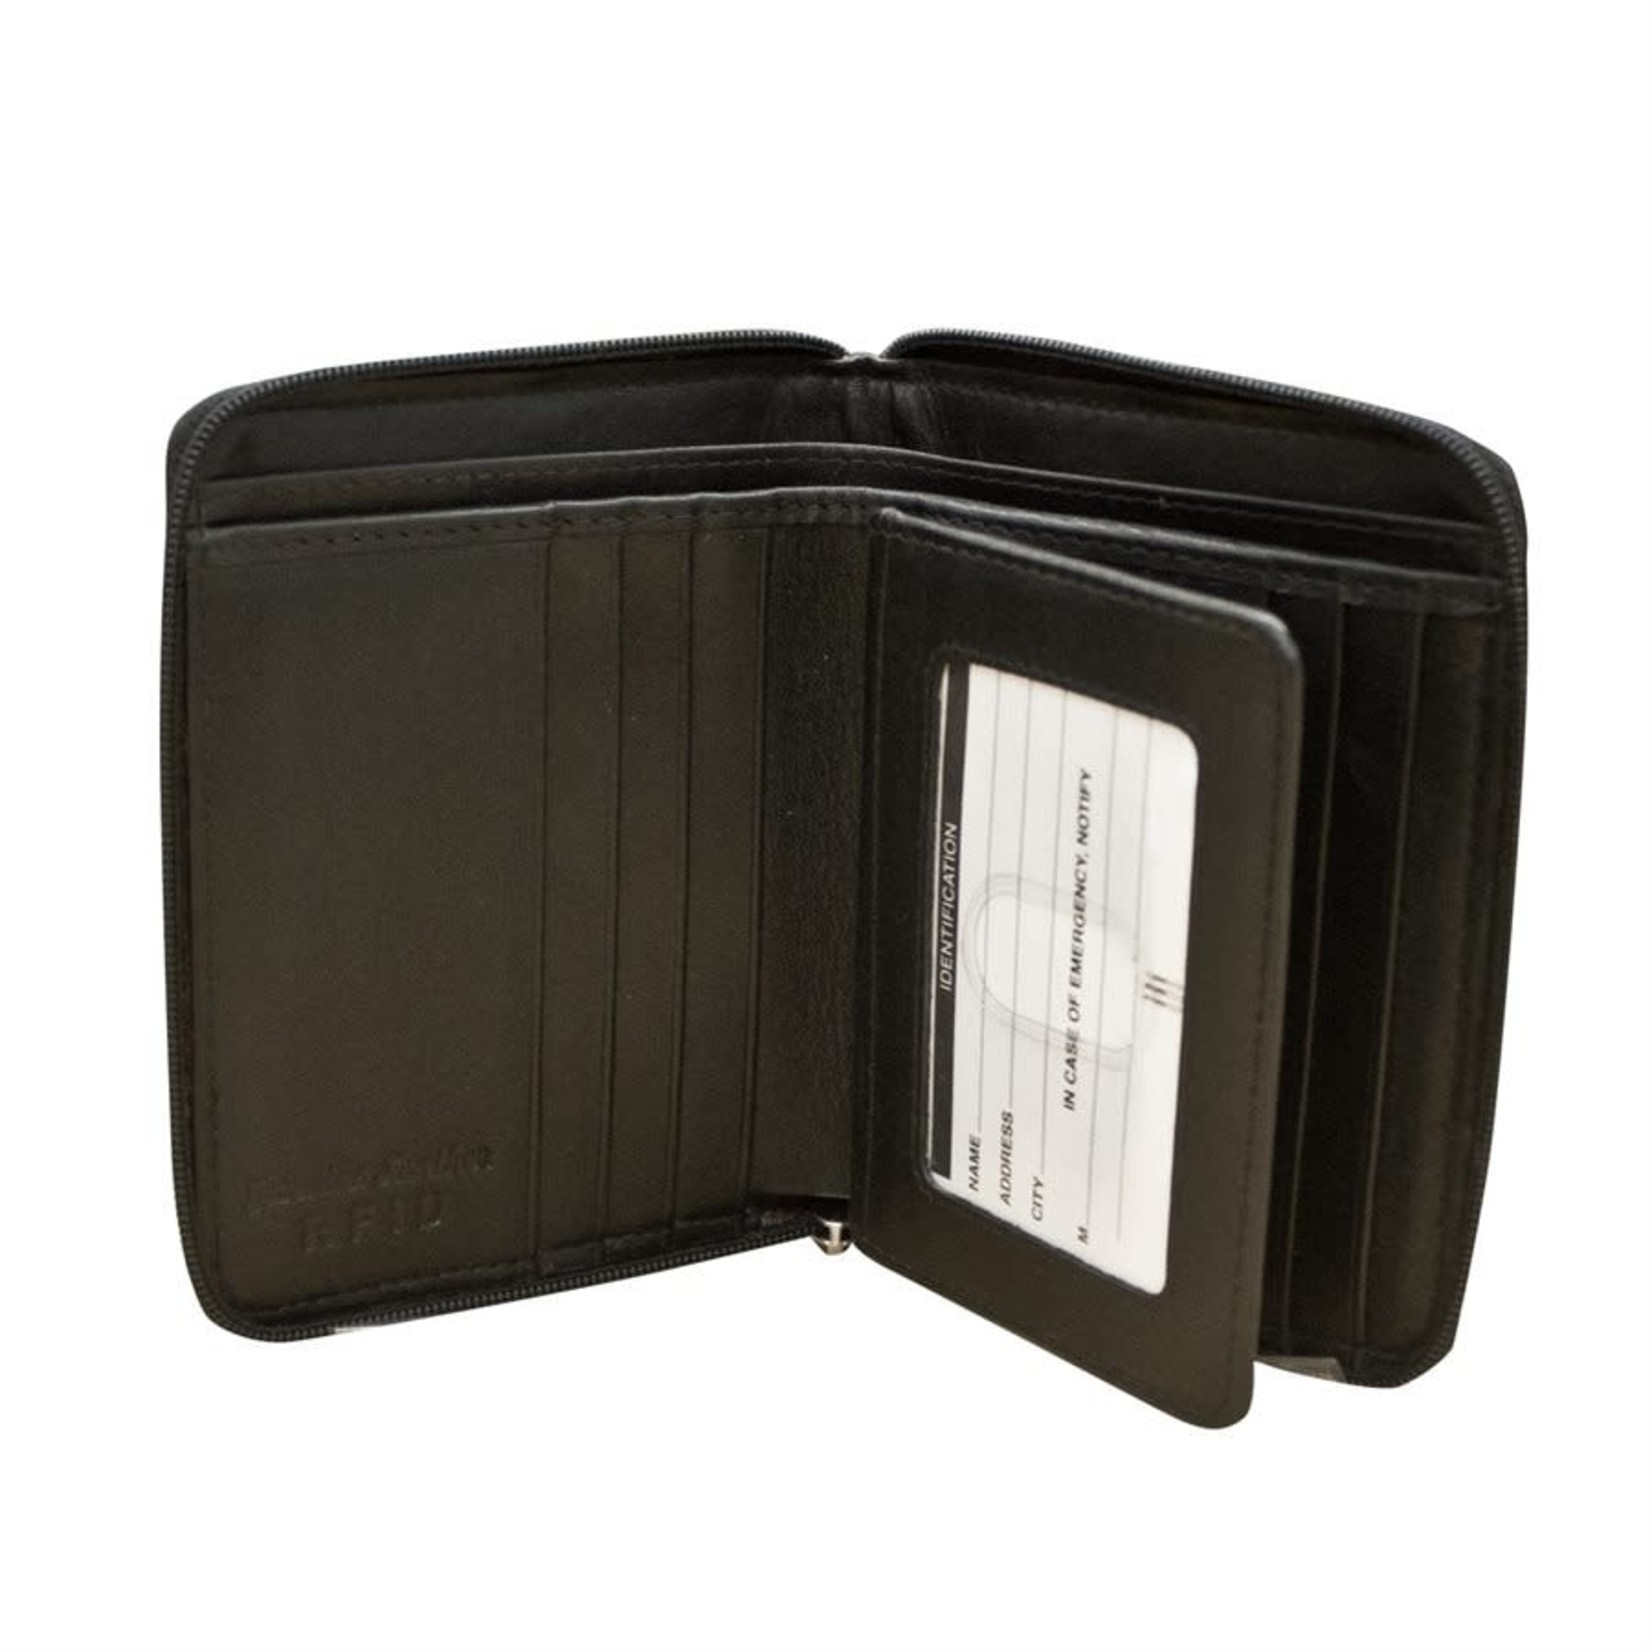 Leather Handbags and Accessories 7859 Black - RFID Zip Around Wallet